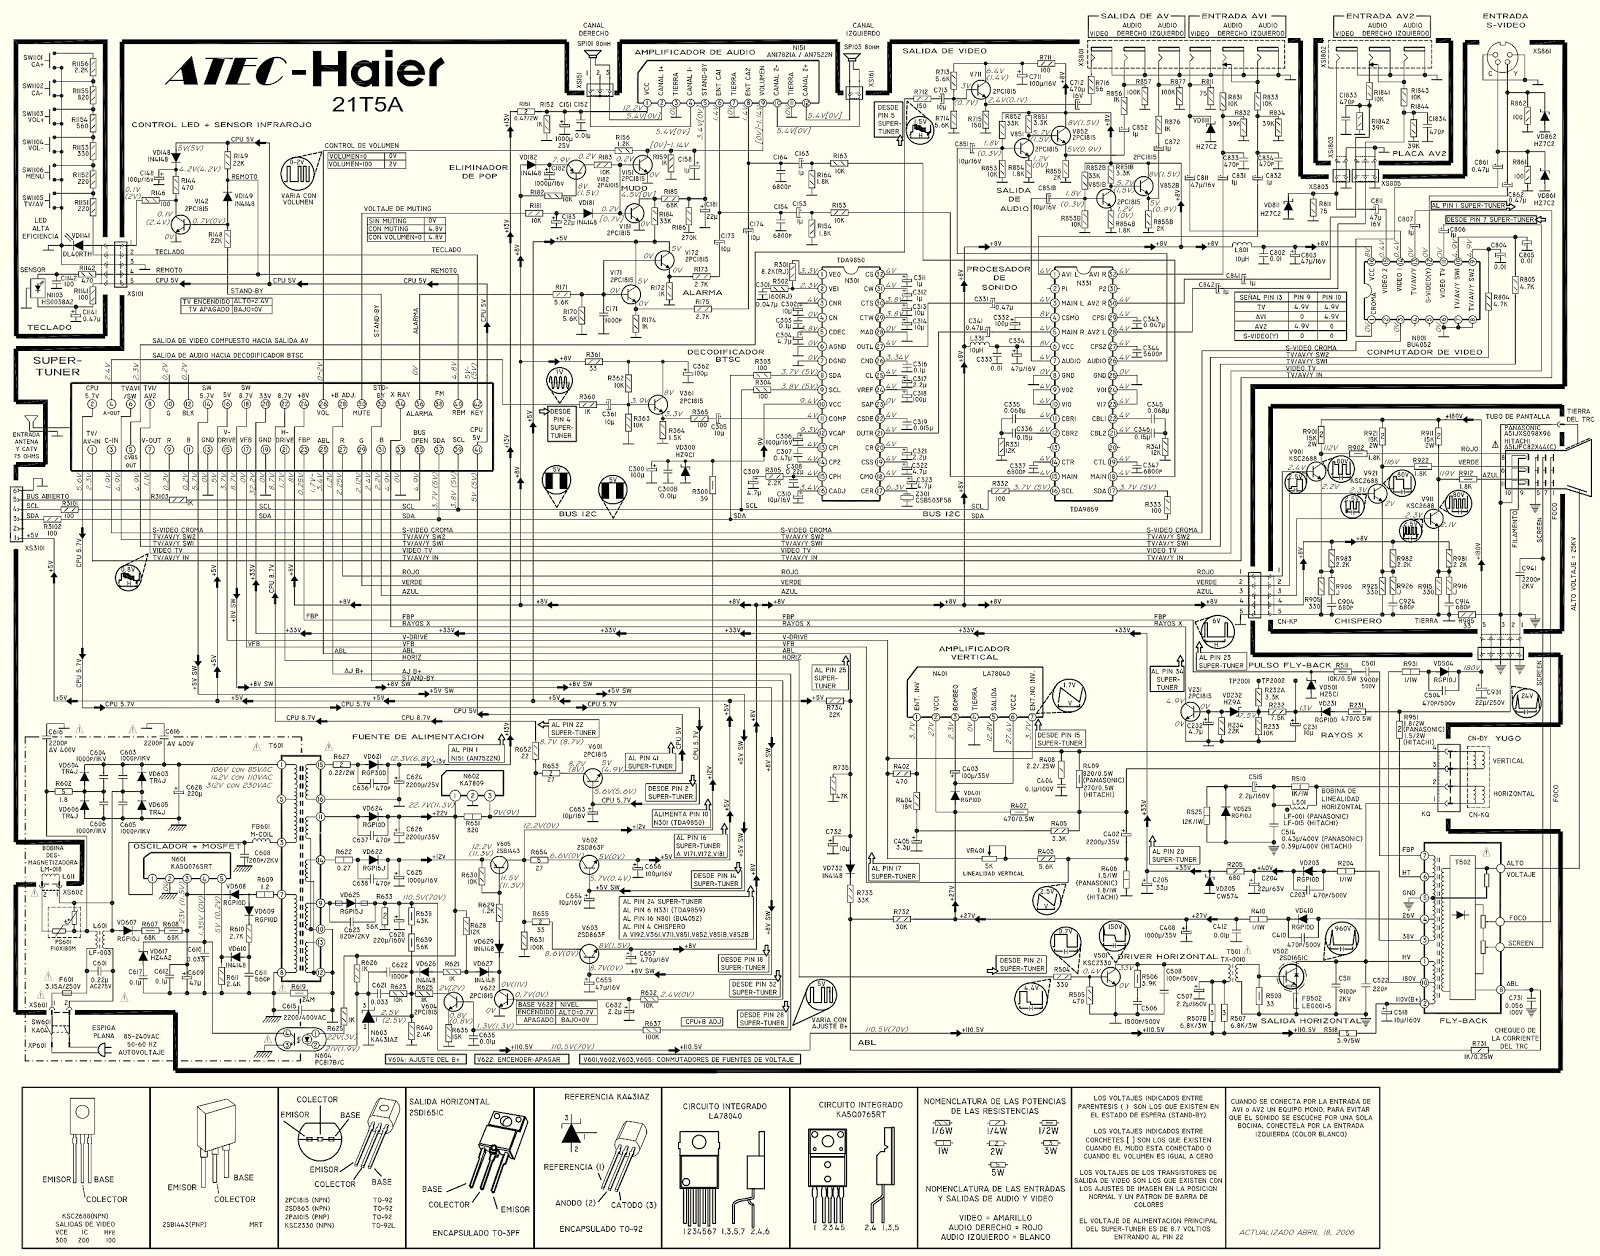 haier wiring diagram wiring diagram haier split ac wiring diagram haier dryer wiring diagram wiring schematic [ 1600 x 1256 Pixel ]